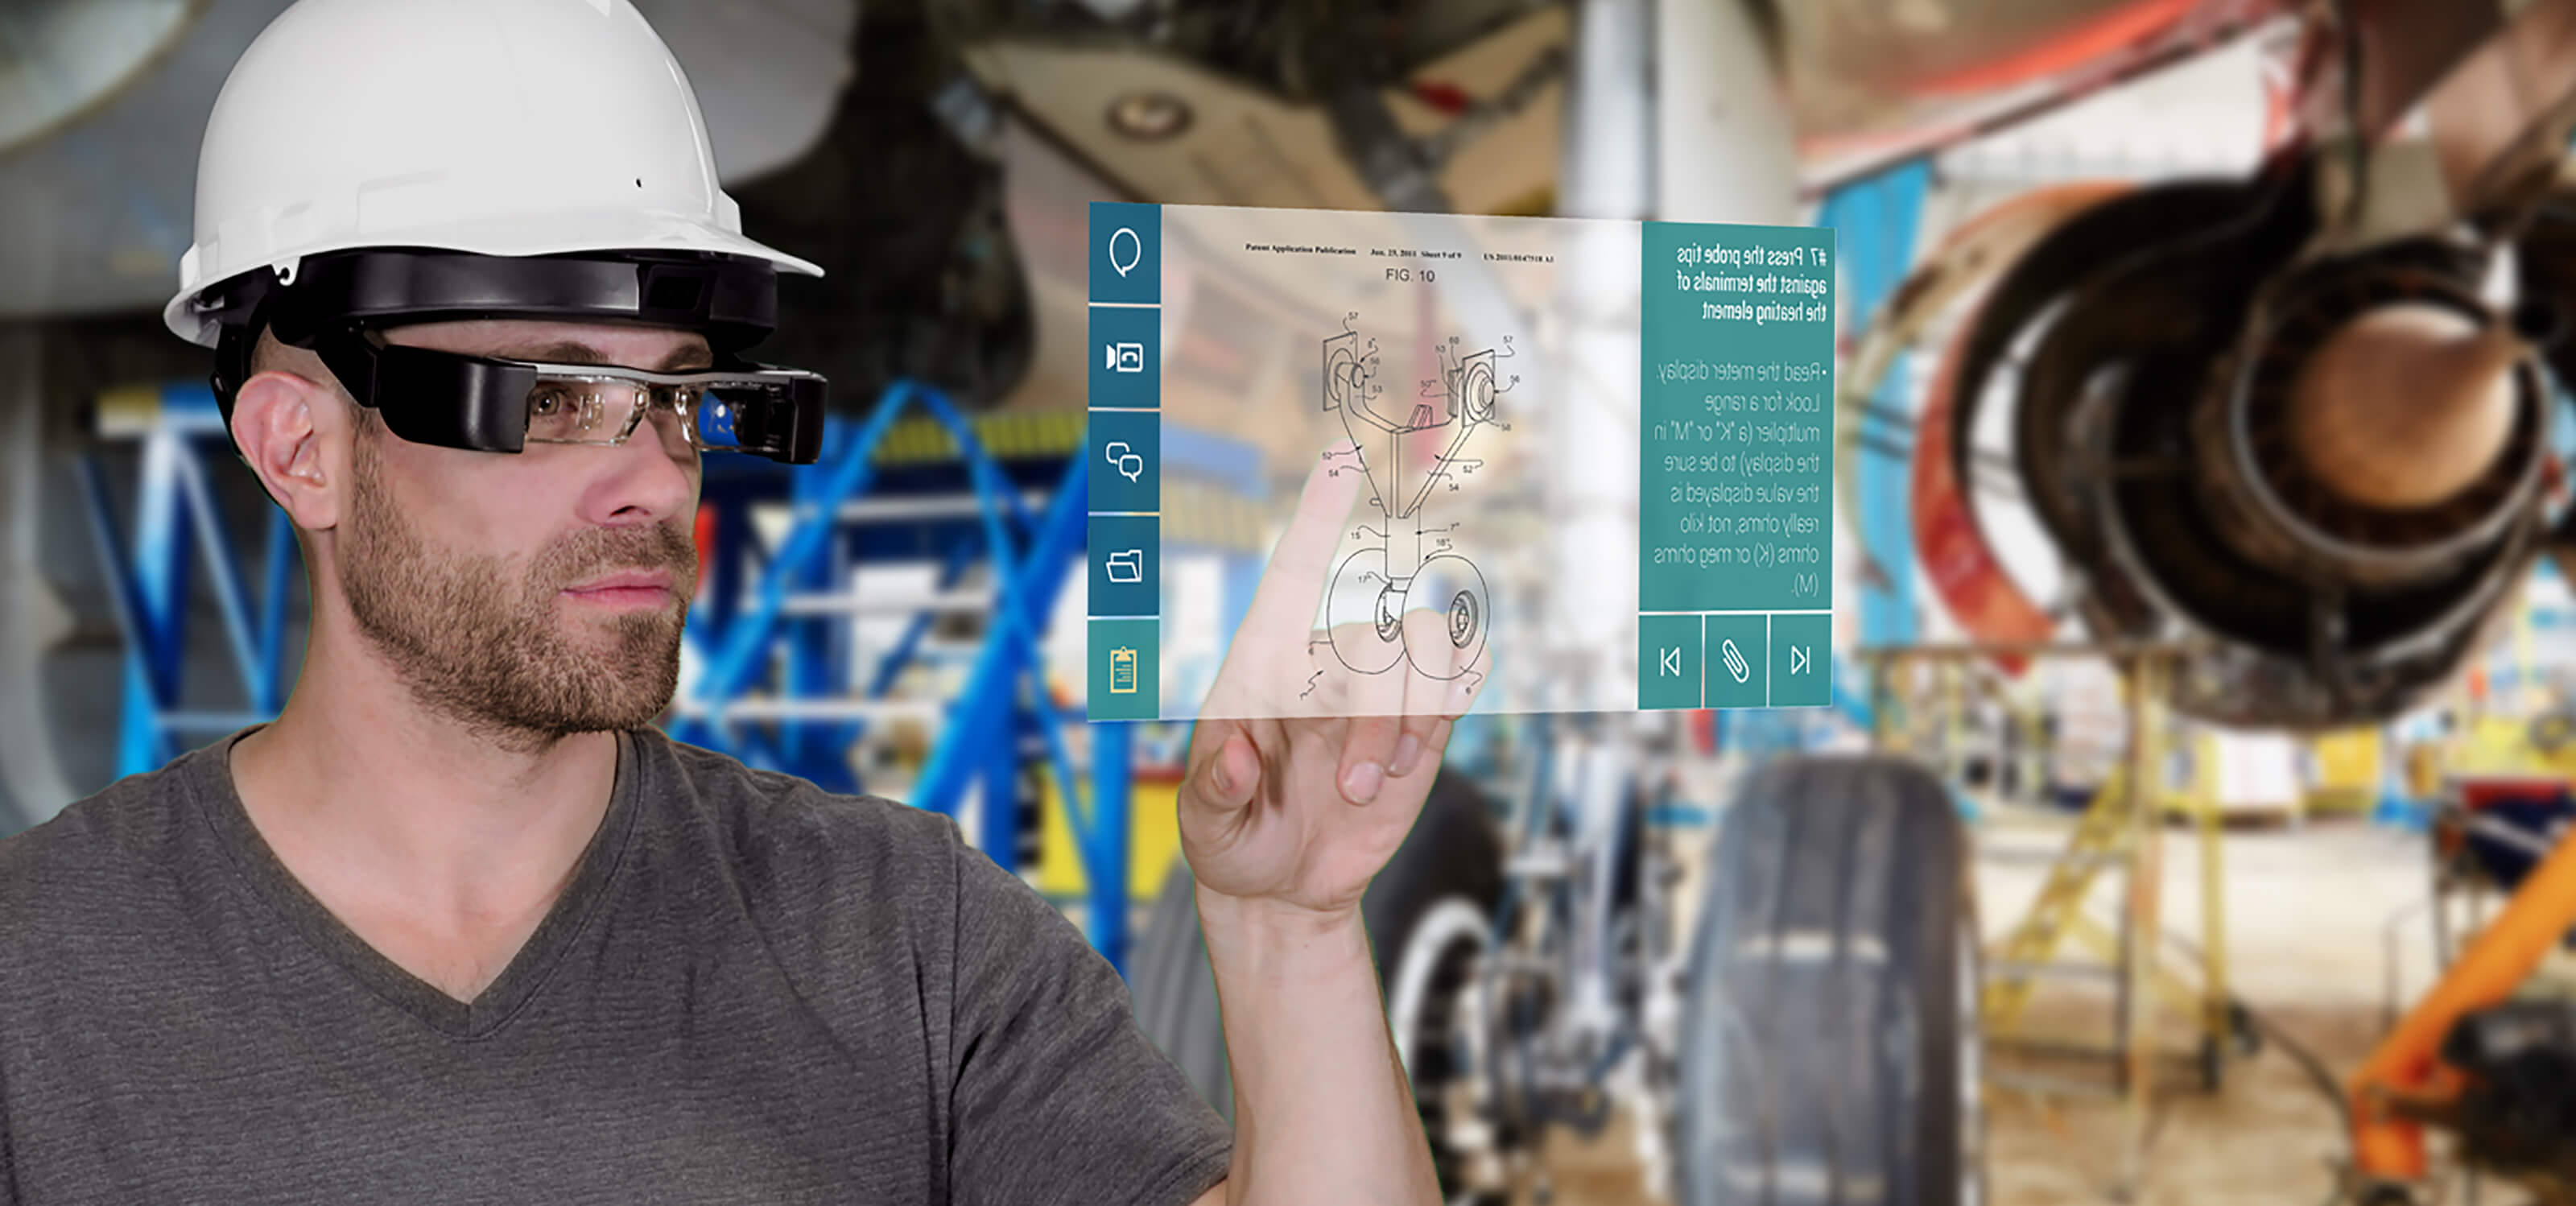 An aerospace engineer wearing a hard hat and Atheer AR's wearable augmented reality glasses interacts with an AR interface displaying schematics of a plane part.